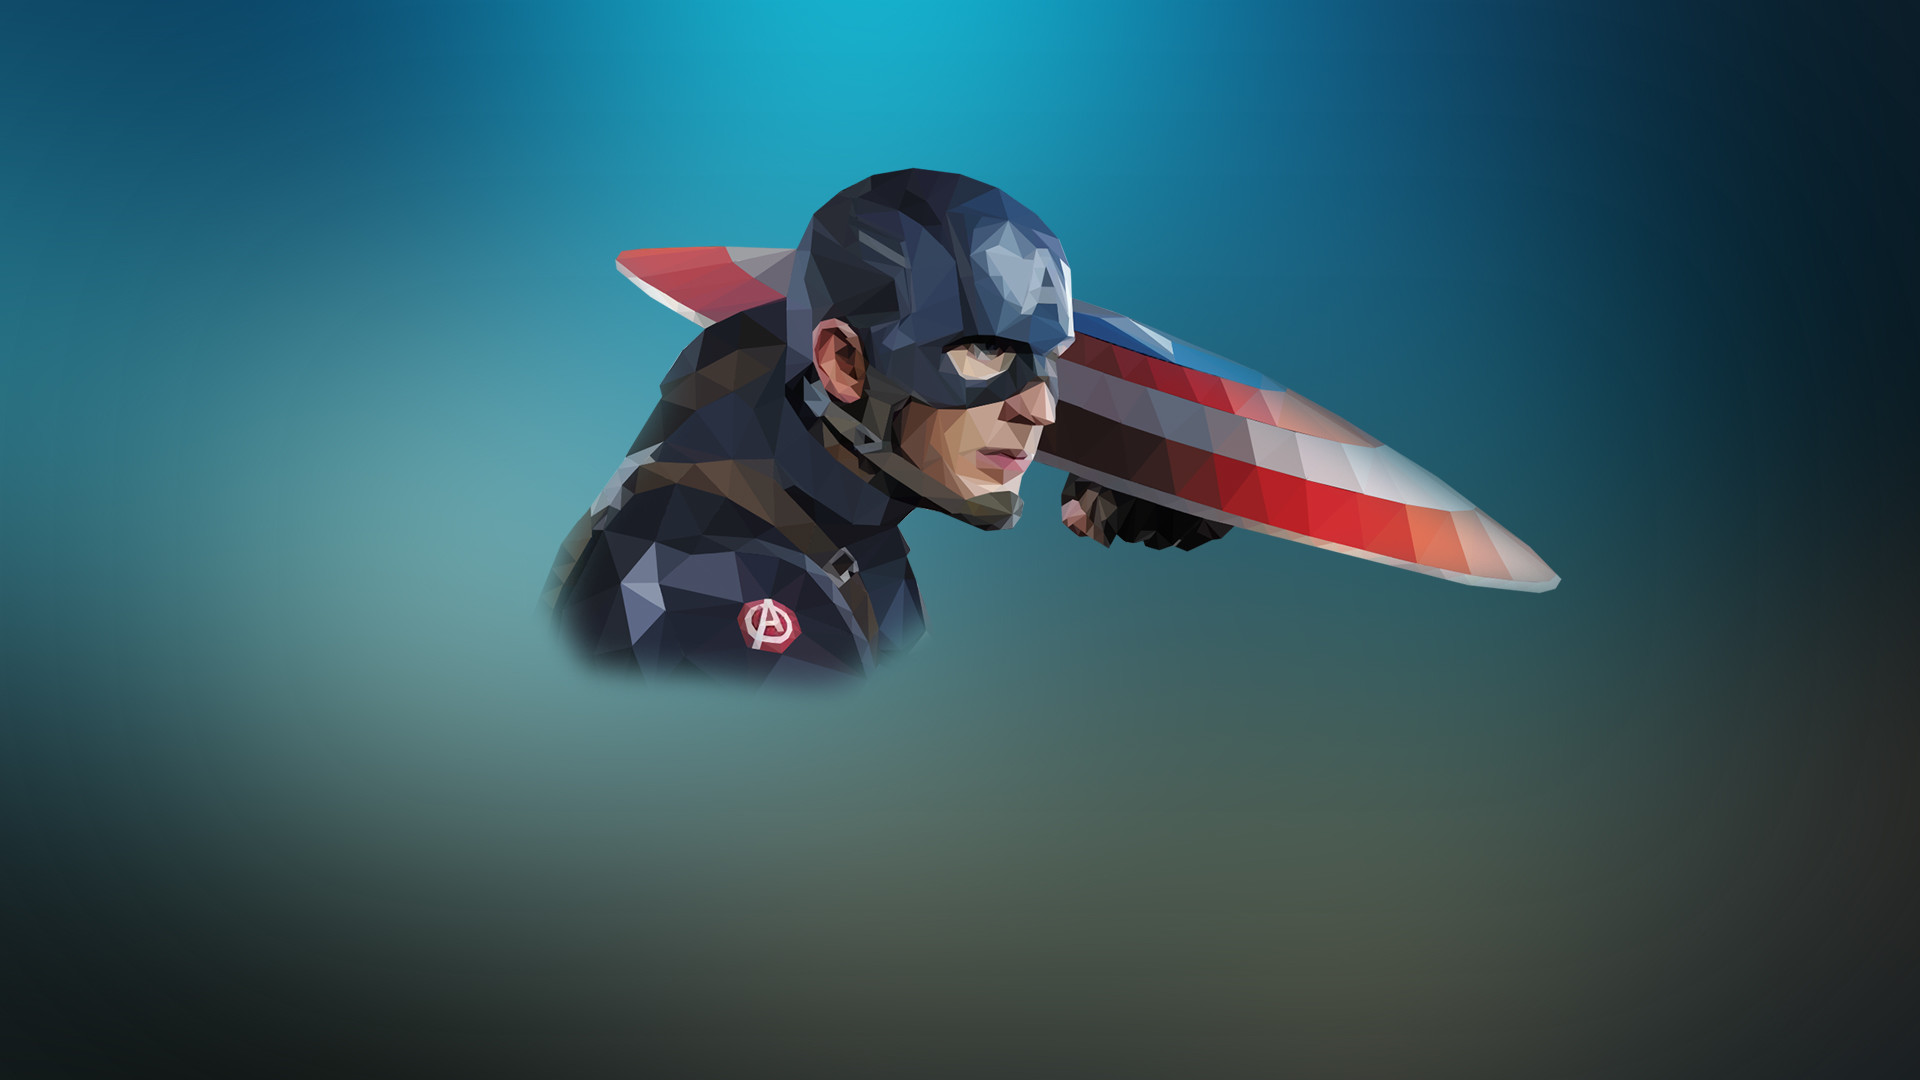 1920x1080  low poly portrait Captain America, simple superhero wallpaper